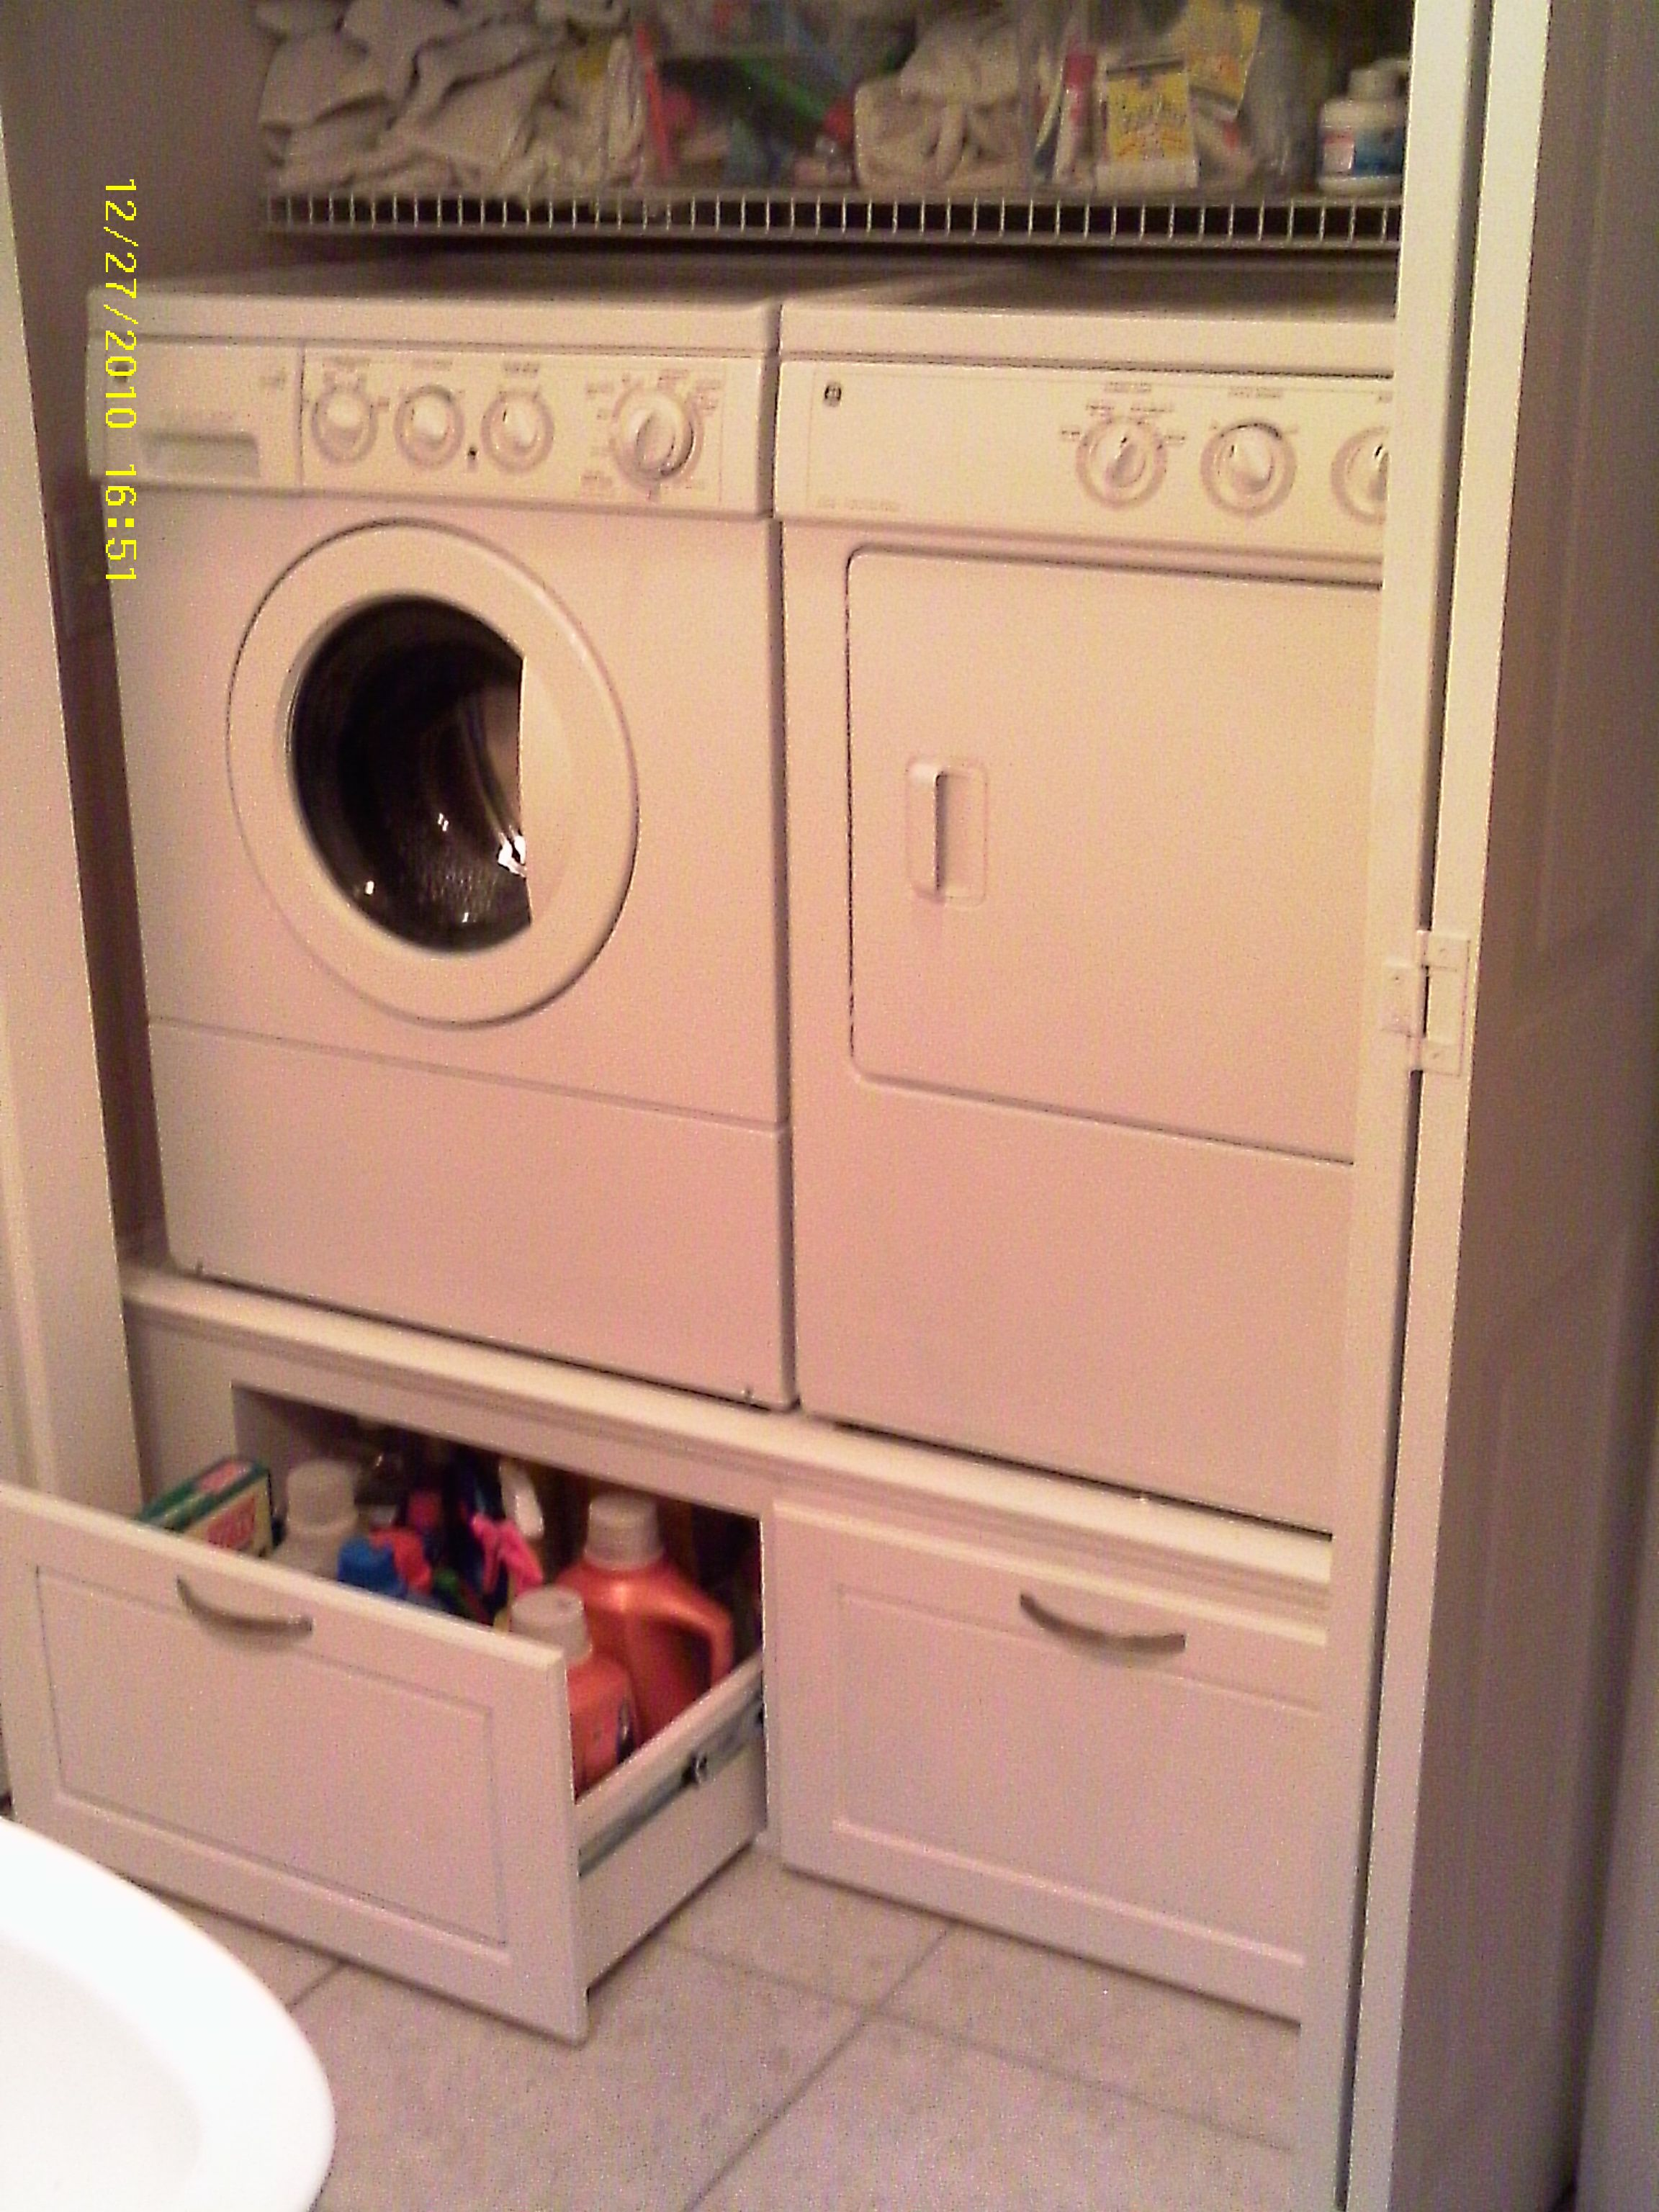 Stacked Washer Dryer Laundry Room